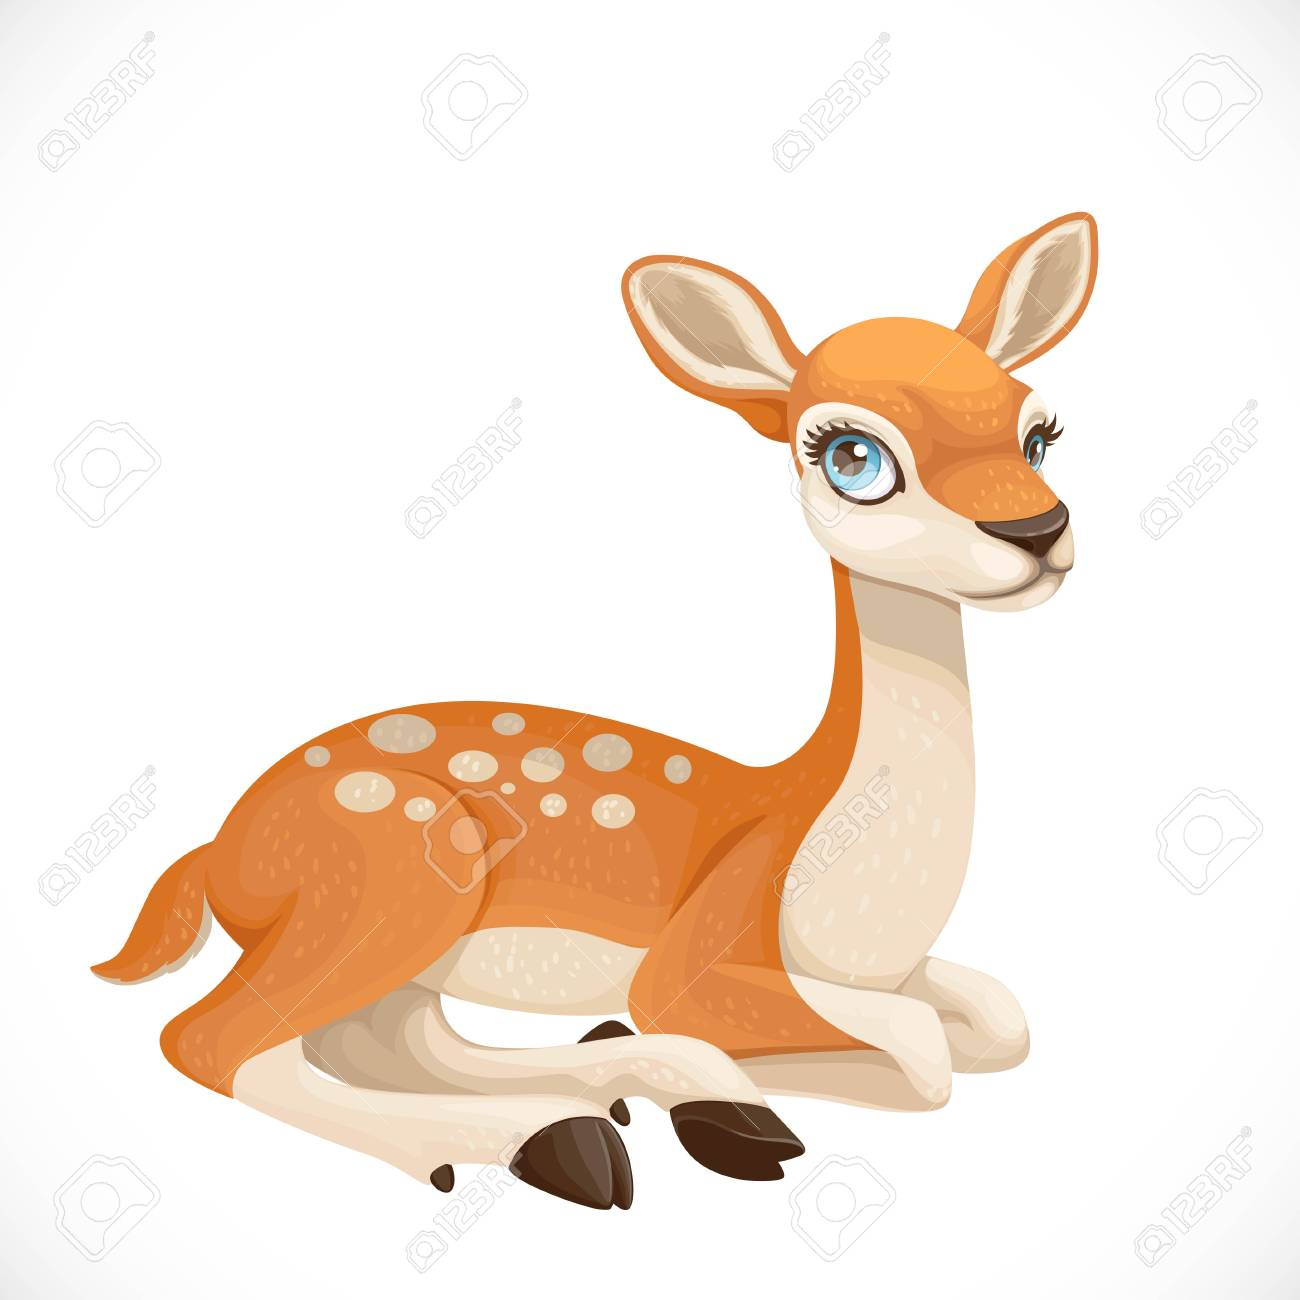 Cute cartoon spotted deer lay on white background - 120616172